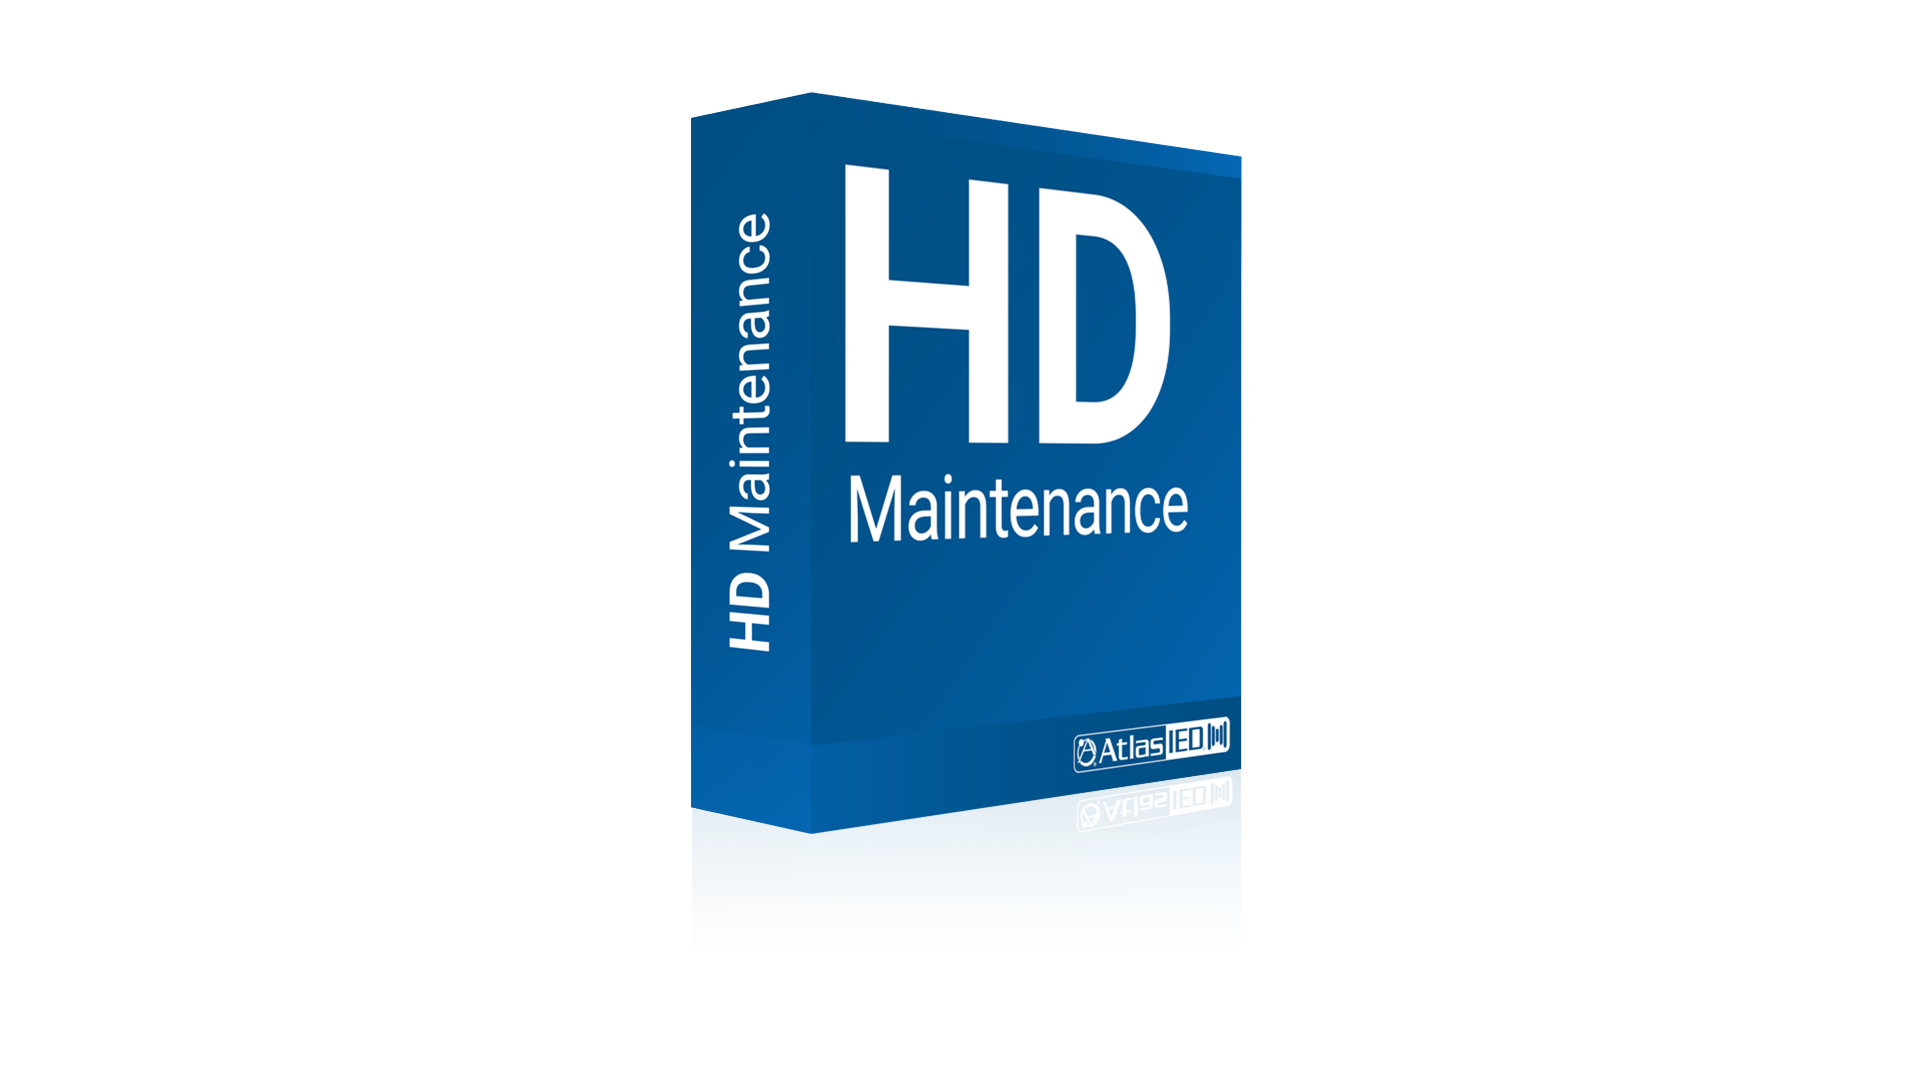 HD Endpoint Yearly Maintenance Subscription for CobraNet